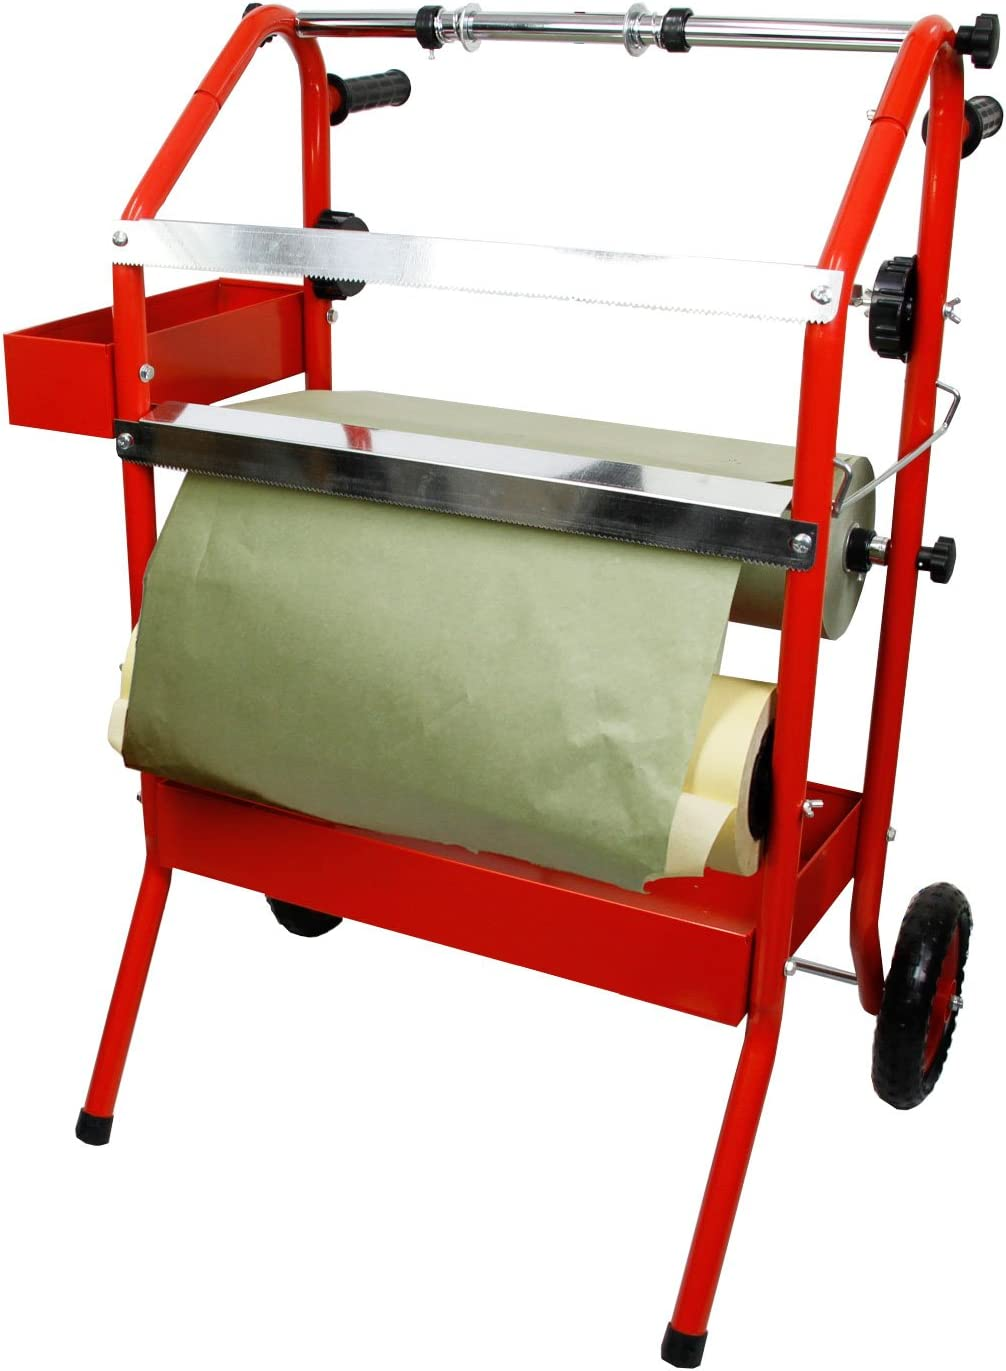 TCP Global Mobile 36 Multi-Roll Masking Paper Machine with Storage Trays Auto Body Paint /& Repair Shop Car Painting Prep